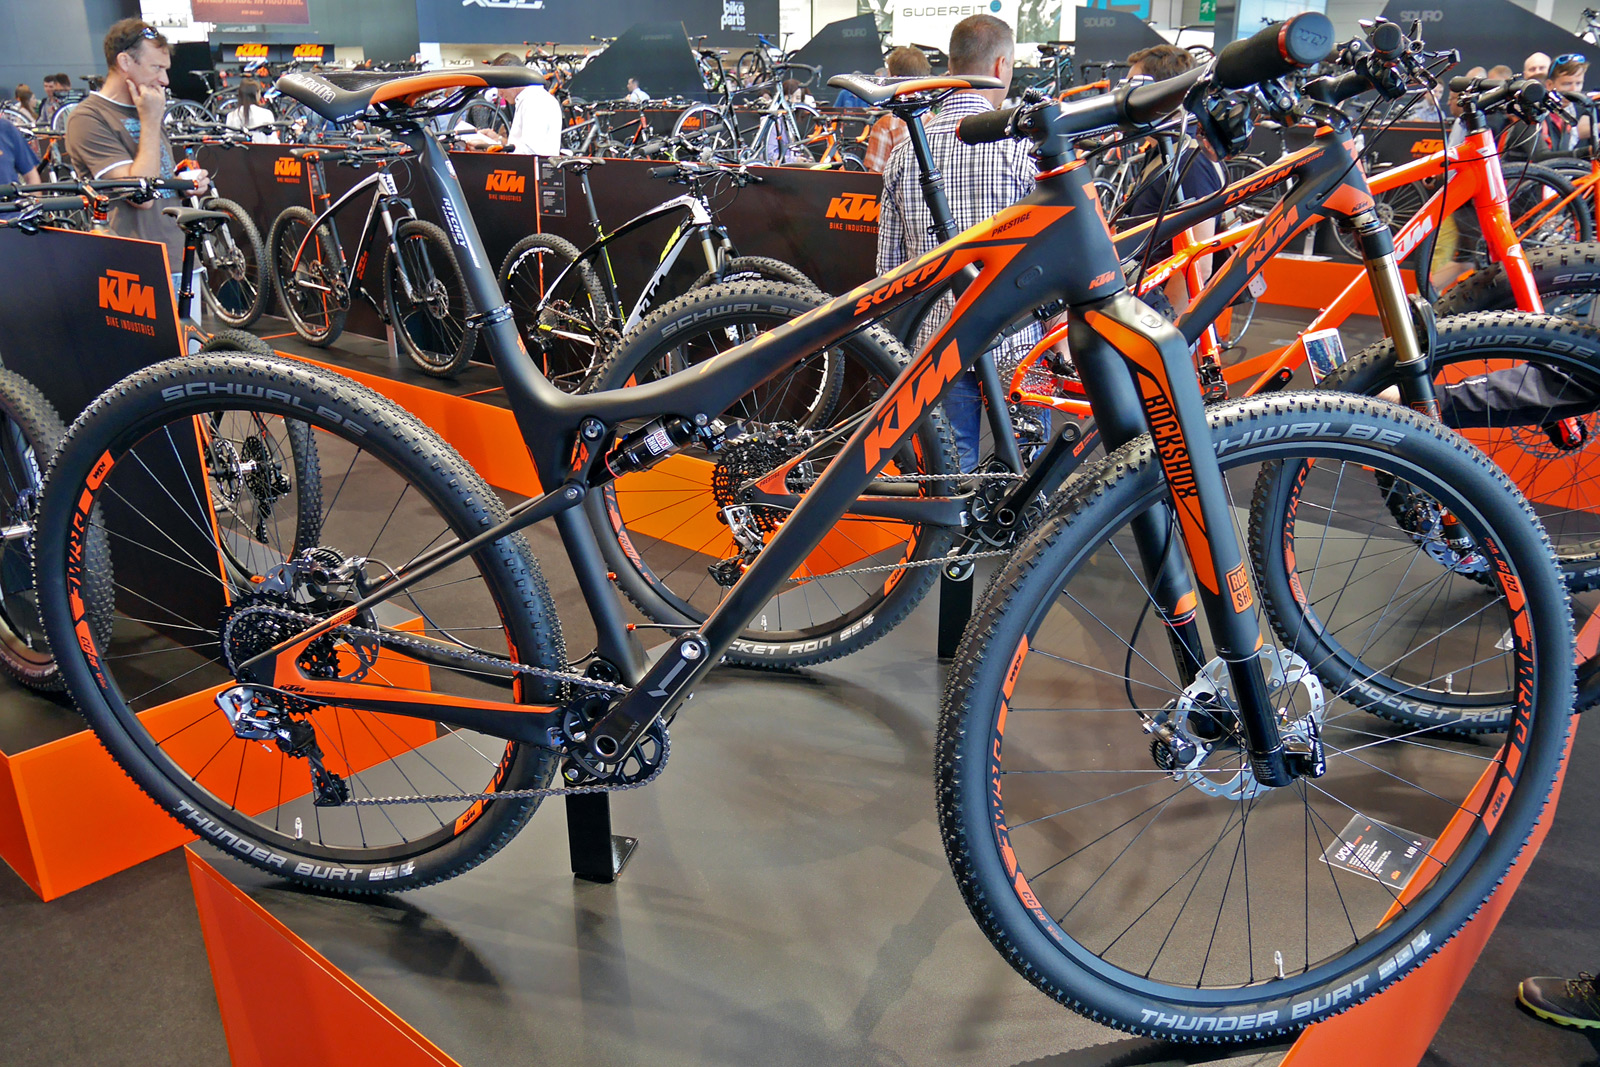 Eb15 Ktm Updates Mountain Bikes With Straight Line Link